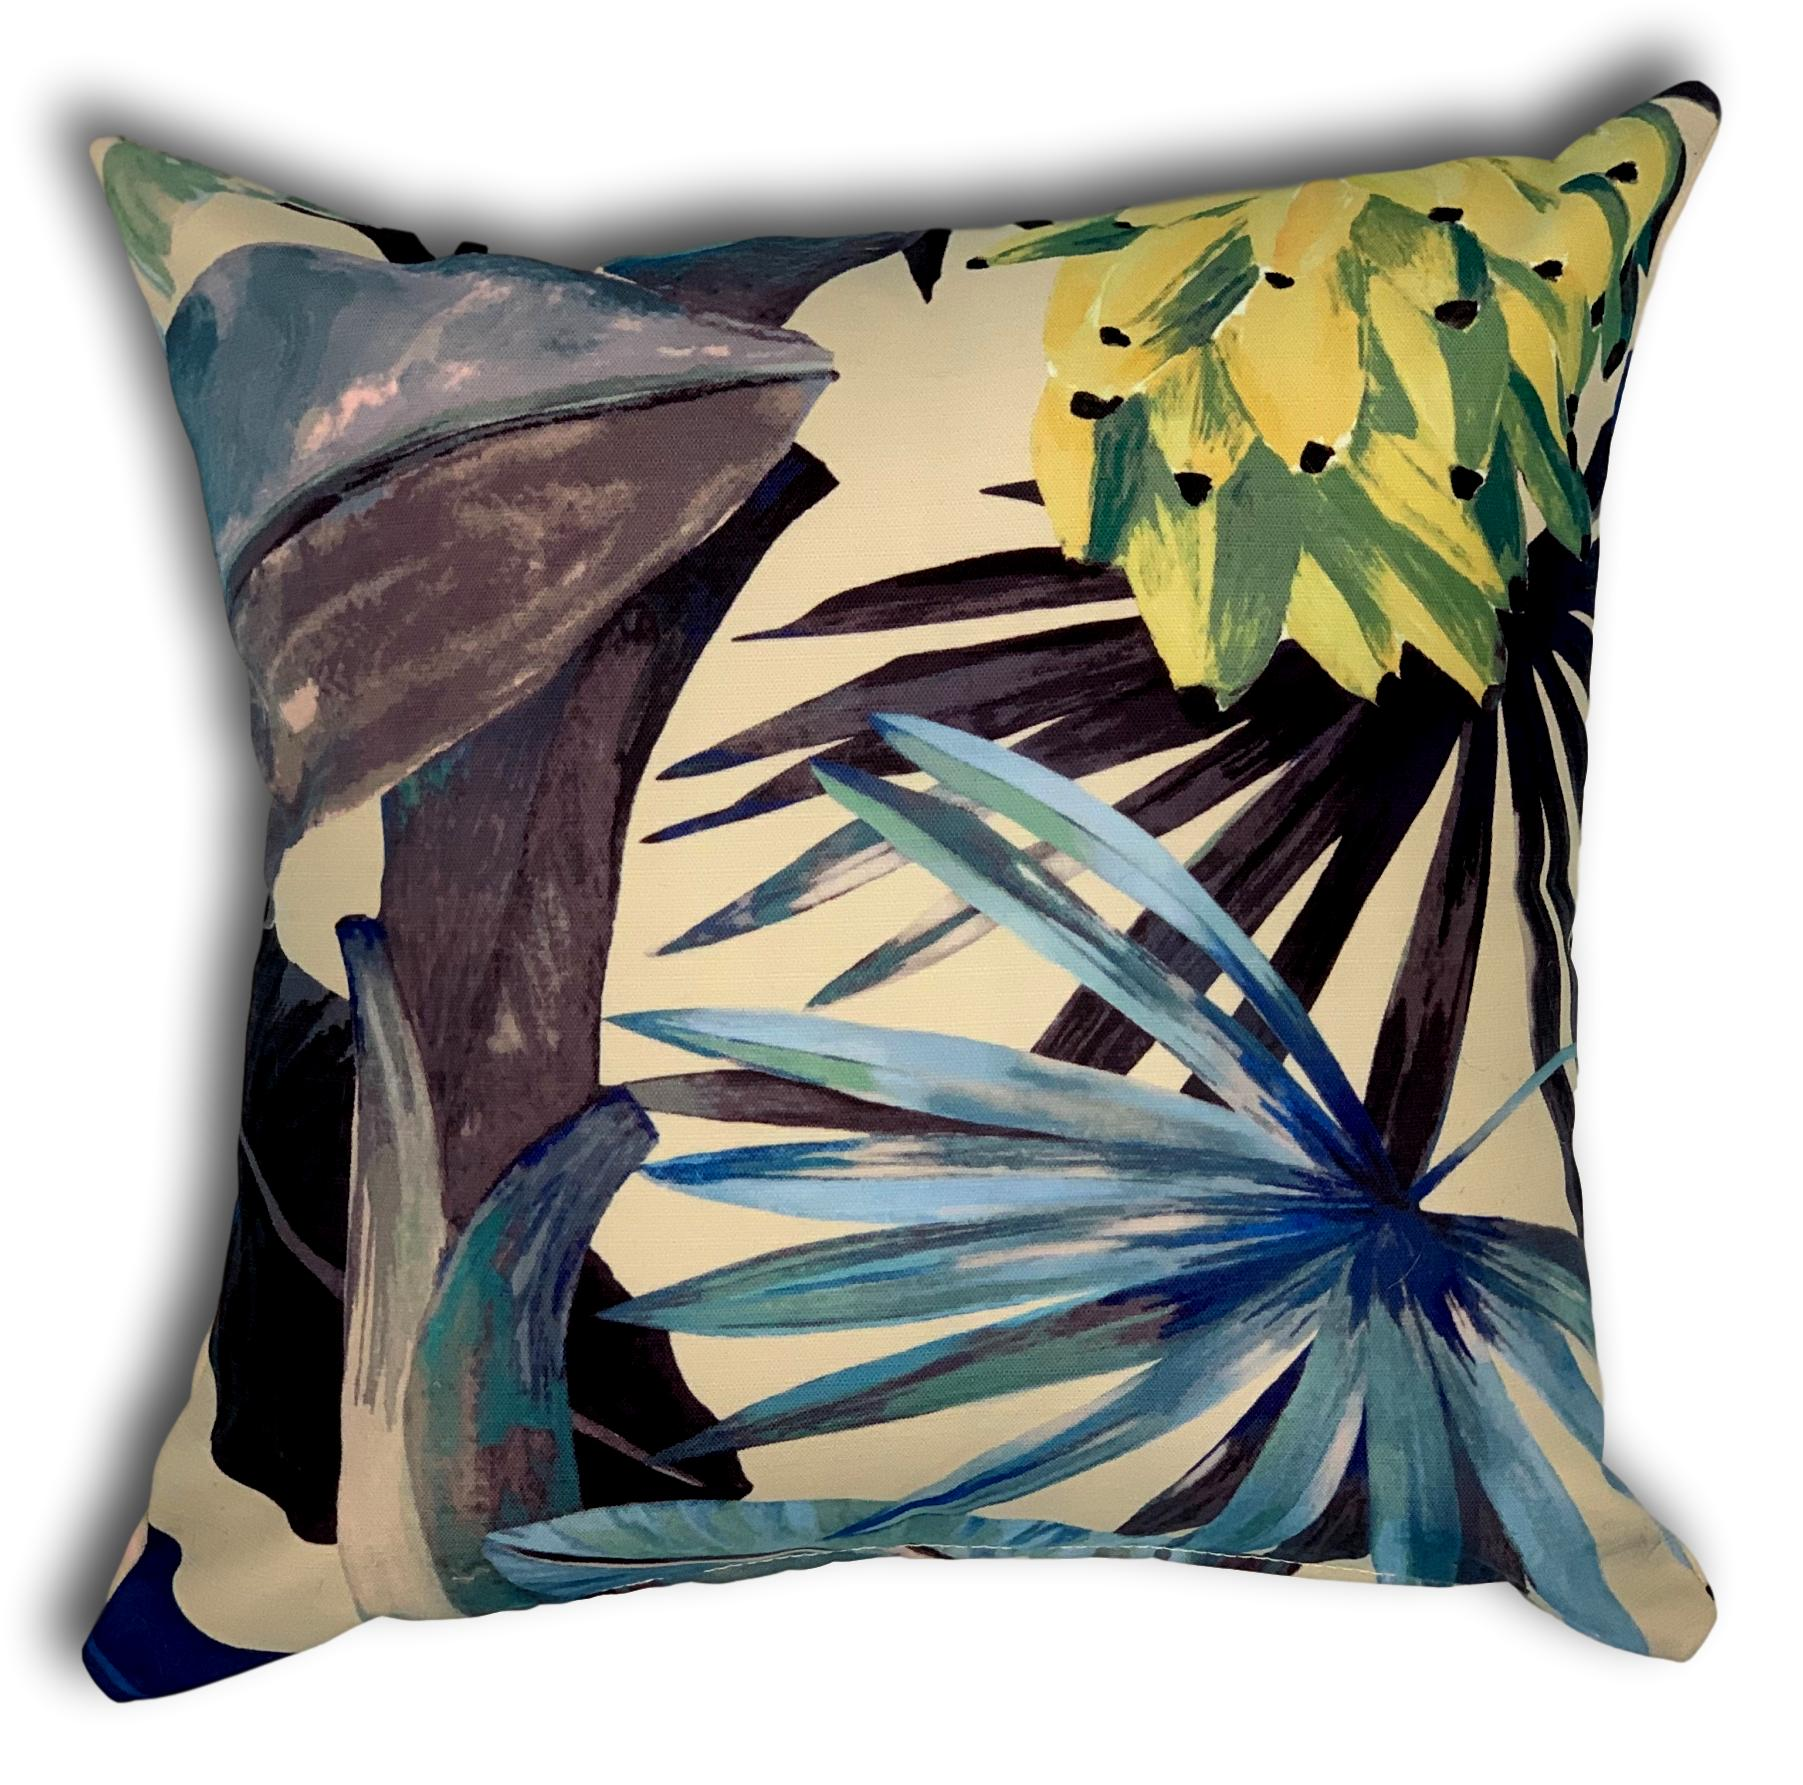 *NEW*Tropicalia Porcelain Boutique Design - Order Now for December Delivery!